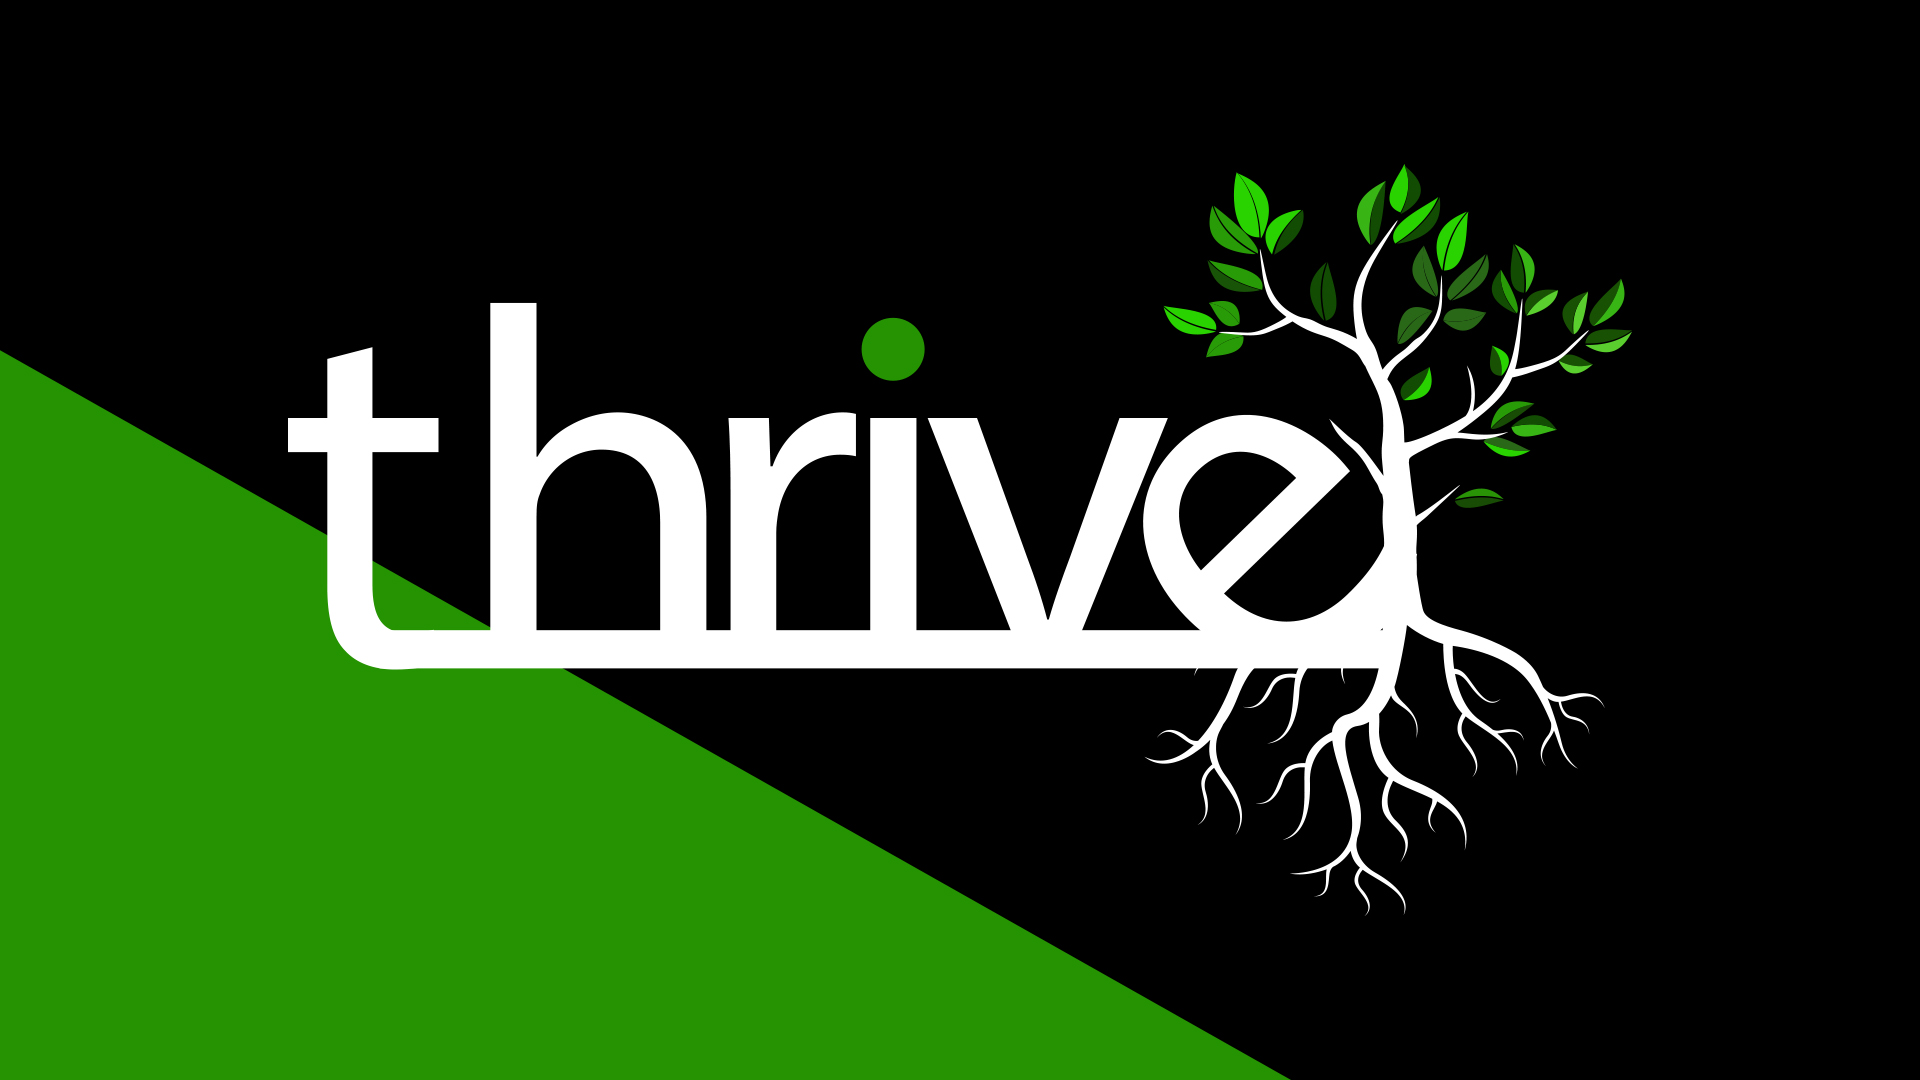 2018 - Thrive - Although our church was undergoing a transition, we were challenged to THRIVE in the midst of it!  Some areas of focus this year were emotional maturity, Kingdom power, leadership development, and presenting the Gospel through drama and story at Easter.  Click the graphic to watch this year's Thrive Report beginning at 52:01.